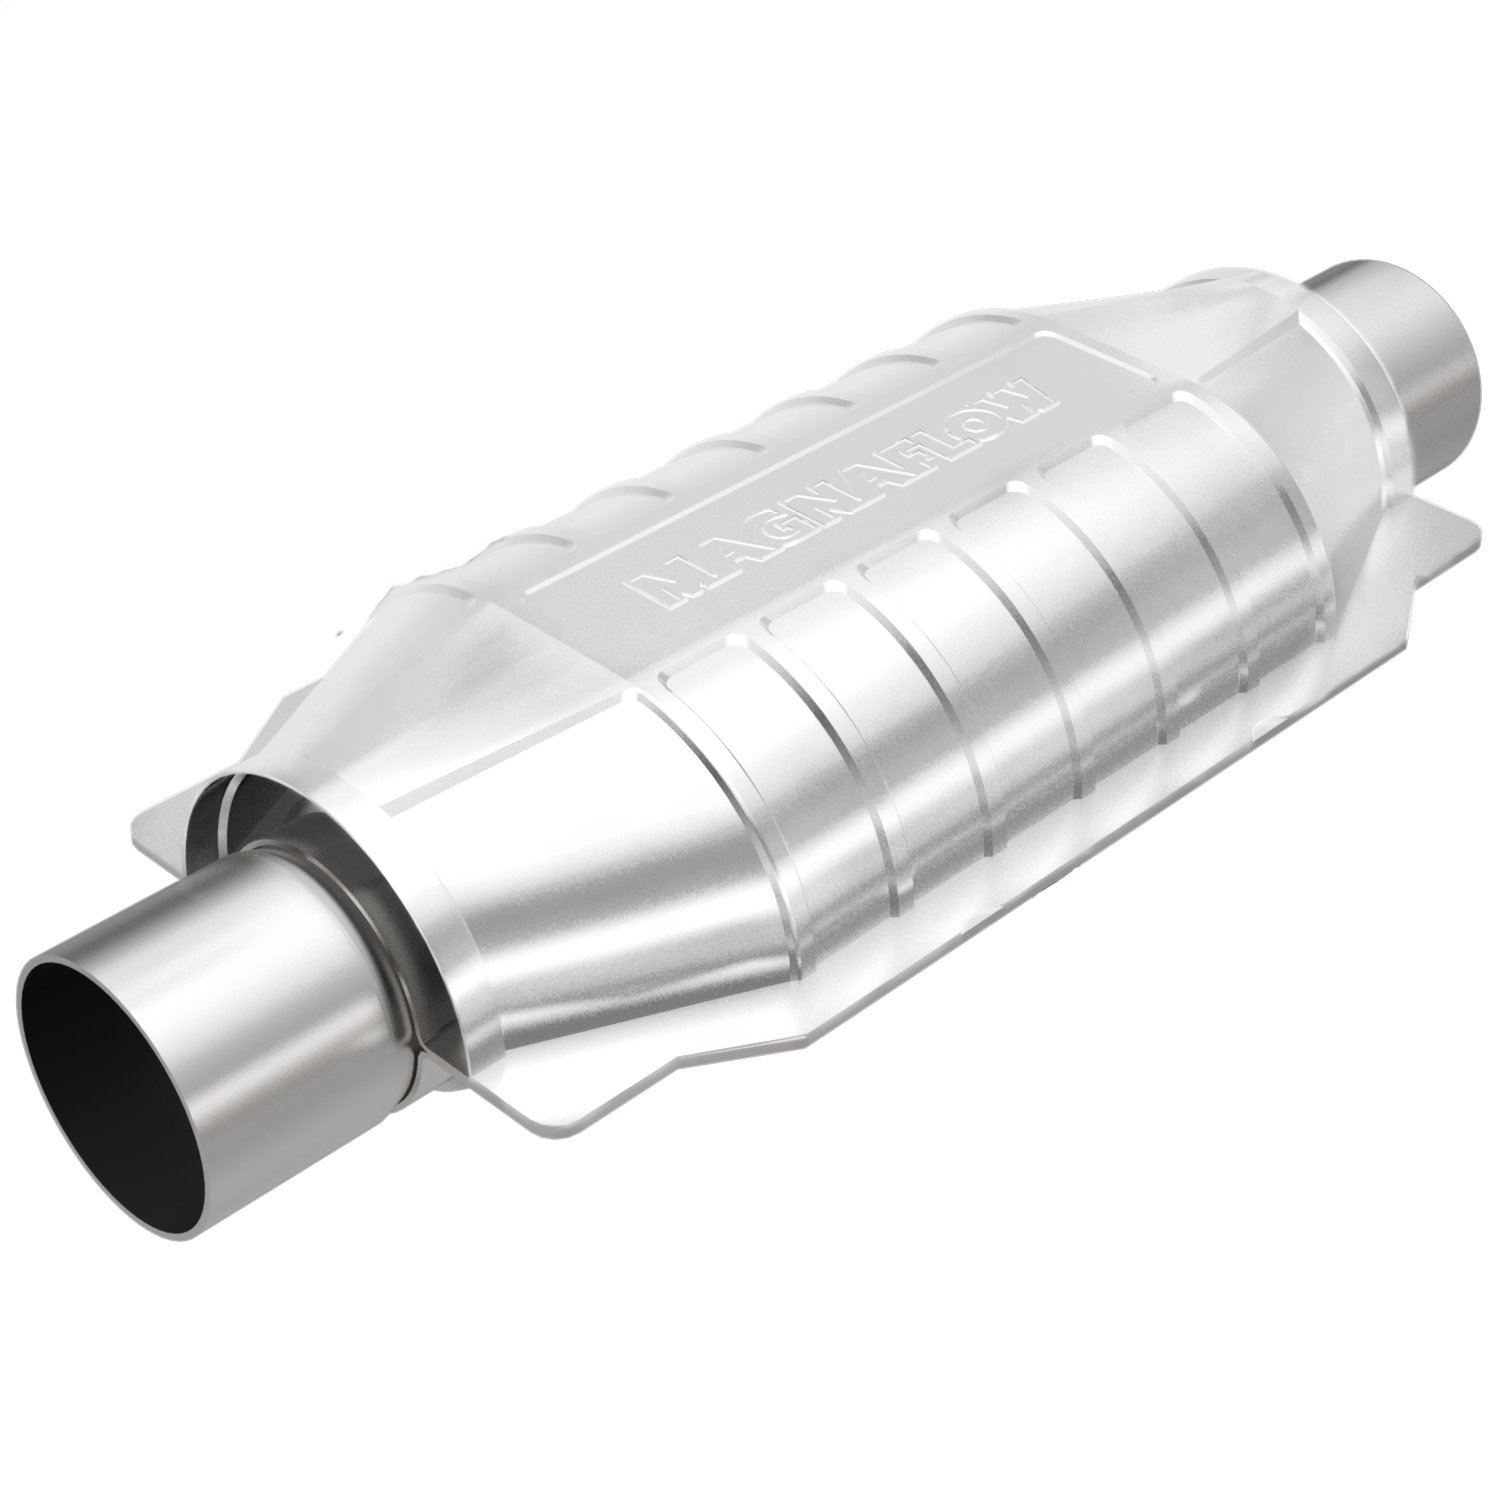 MagnaFlow 99005HM Universal Catalytic Converter (Non CARB Compliant) by MagnaFlow Exhaust Products